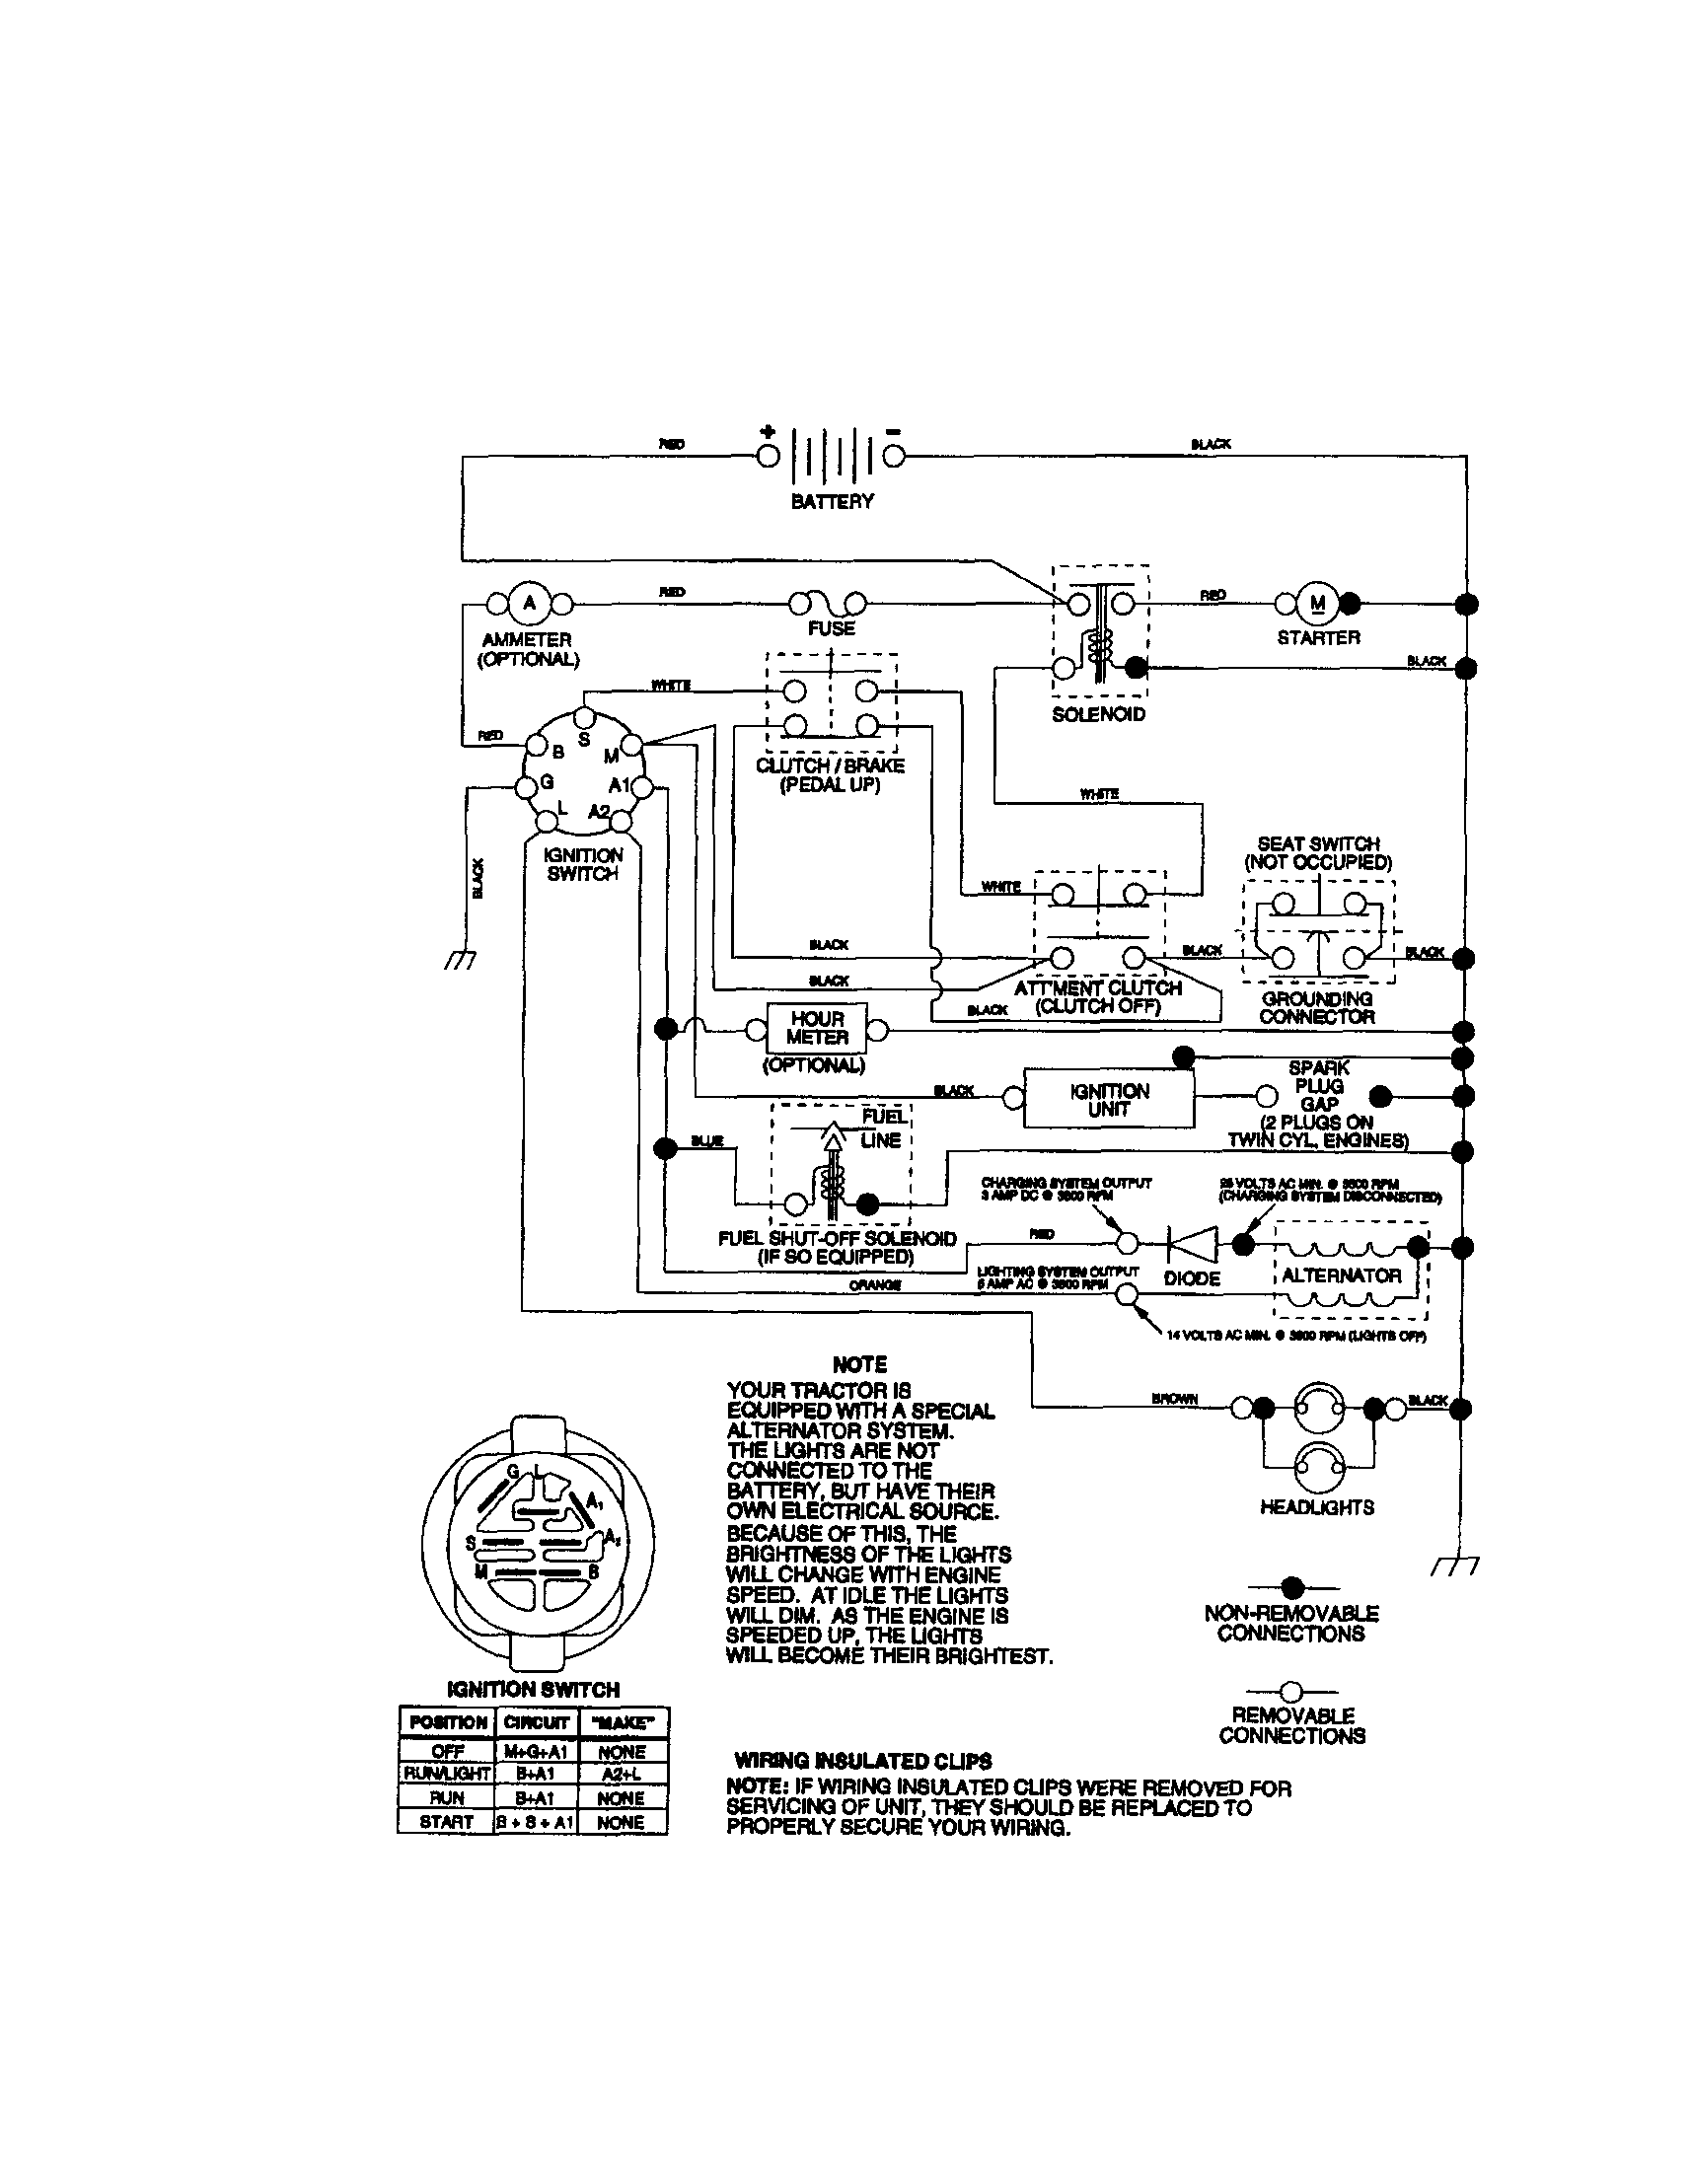 hight resolution of craftsman dyt 4000 wiring diagram